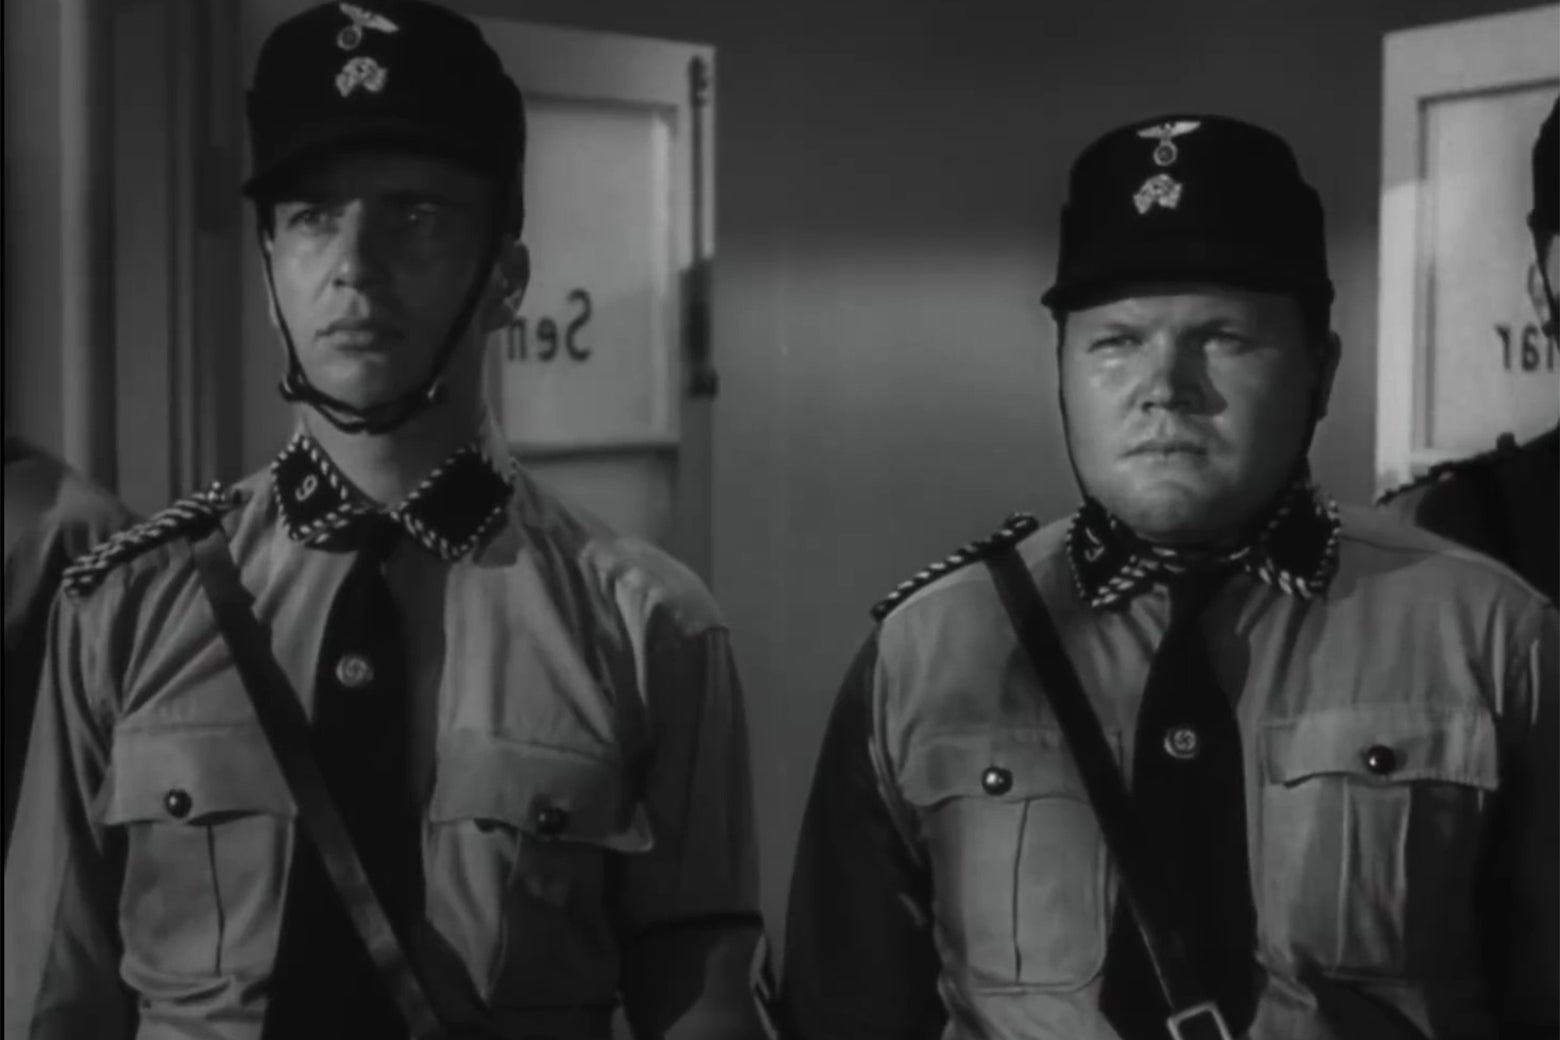 Two stooges in Nazi uniforms.